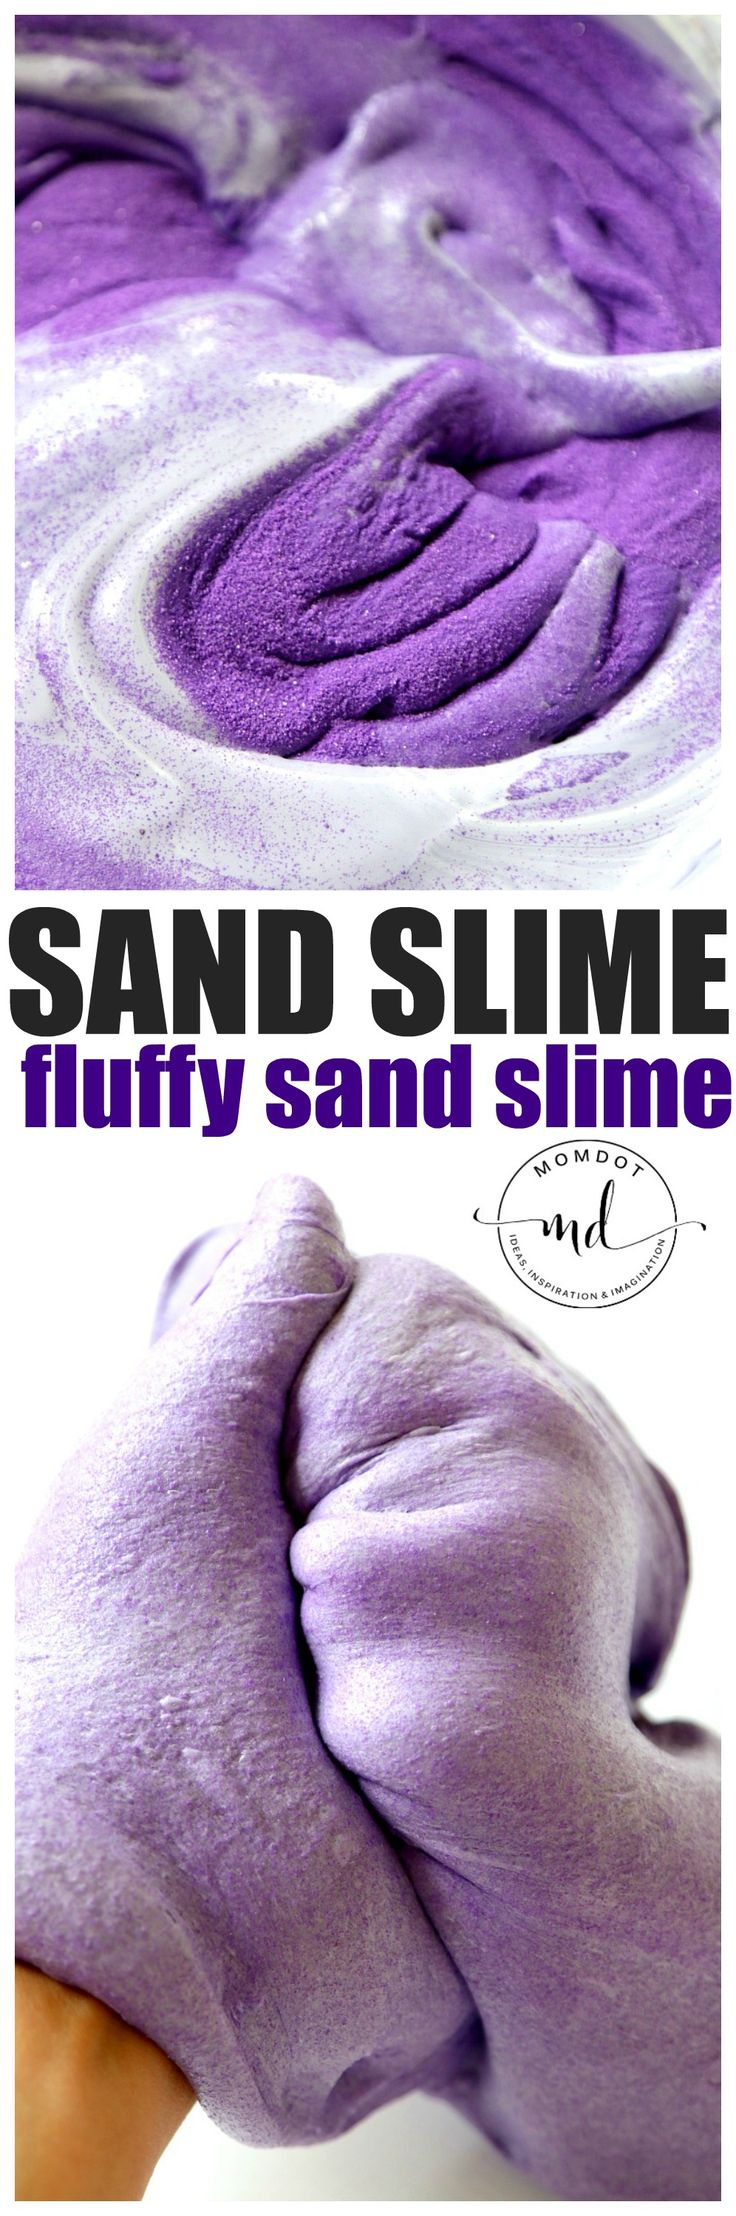 Sand Slime recipe for a new sensory experience than either slime or sand. You can easily make a fluffy sand slime with my sand slime recipe